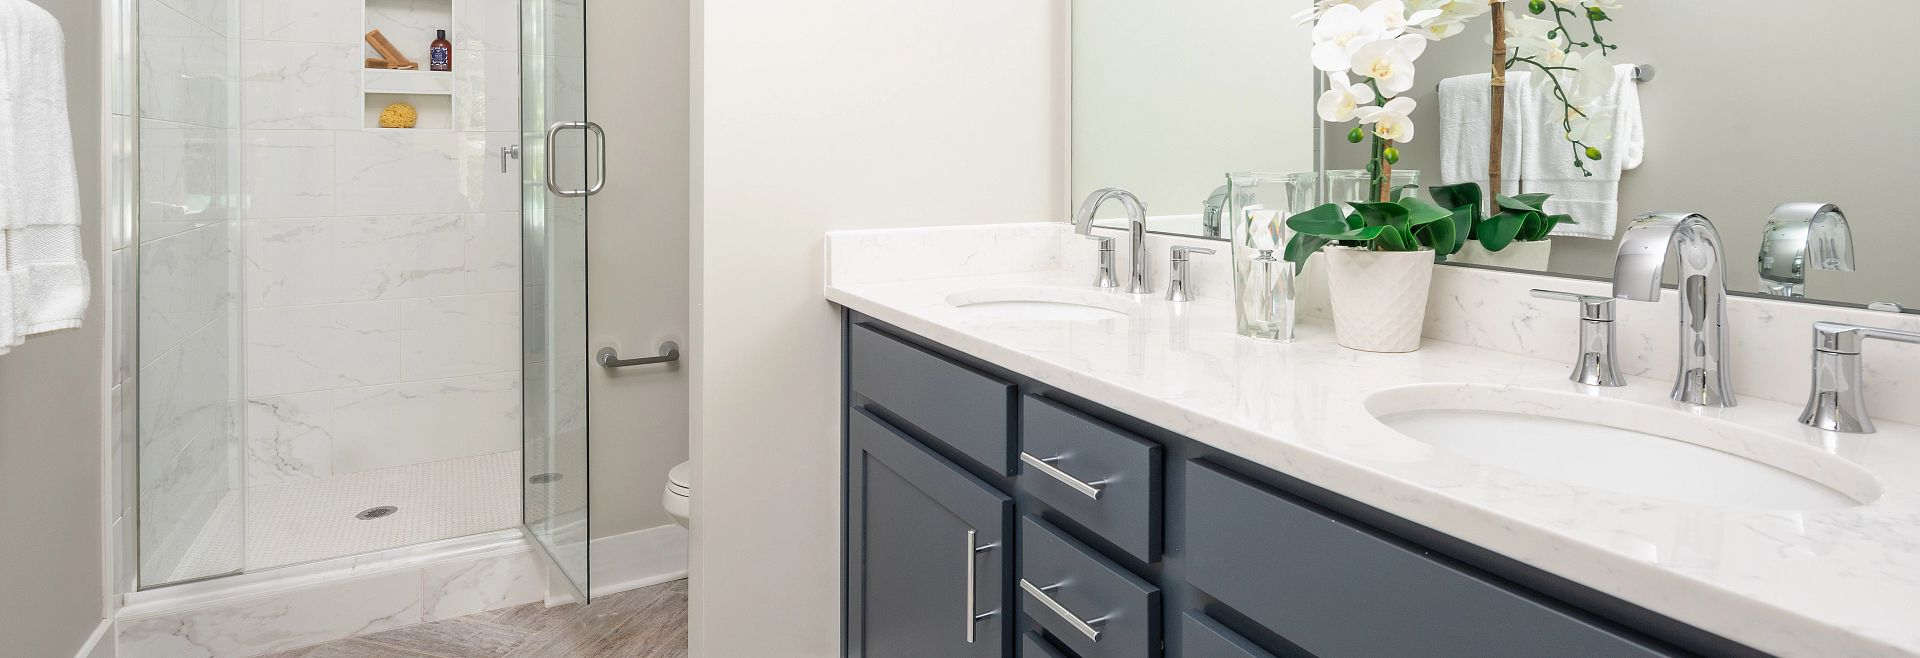 Cambria plan Owner's Bath